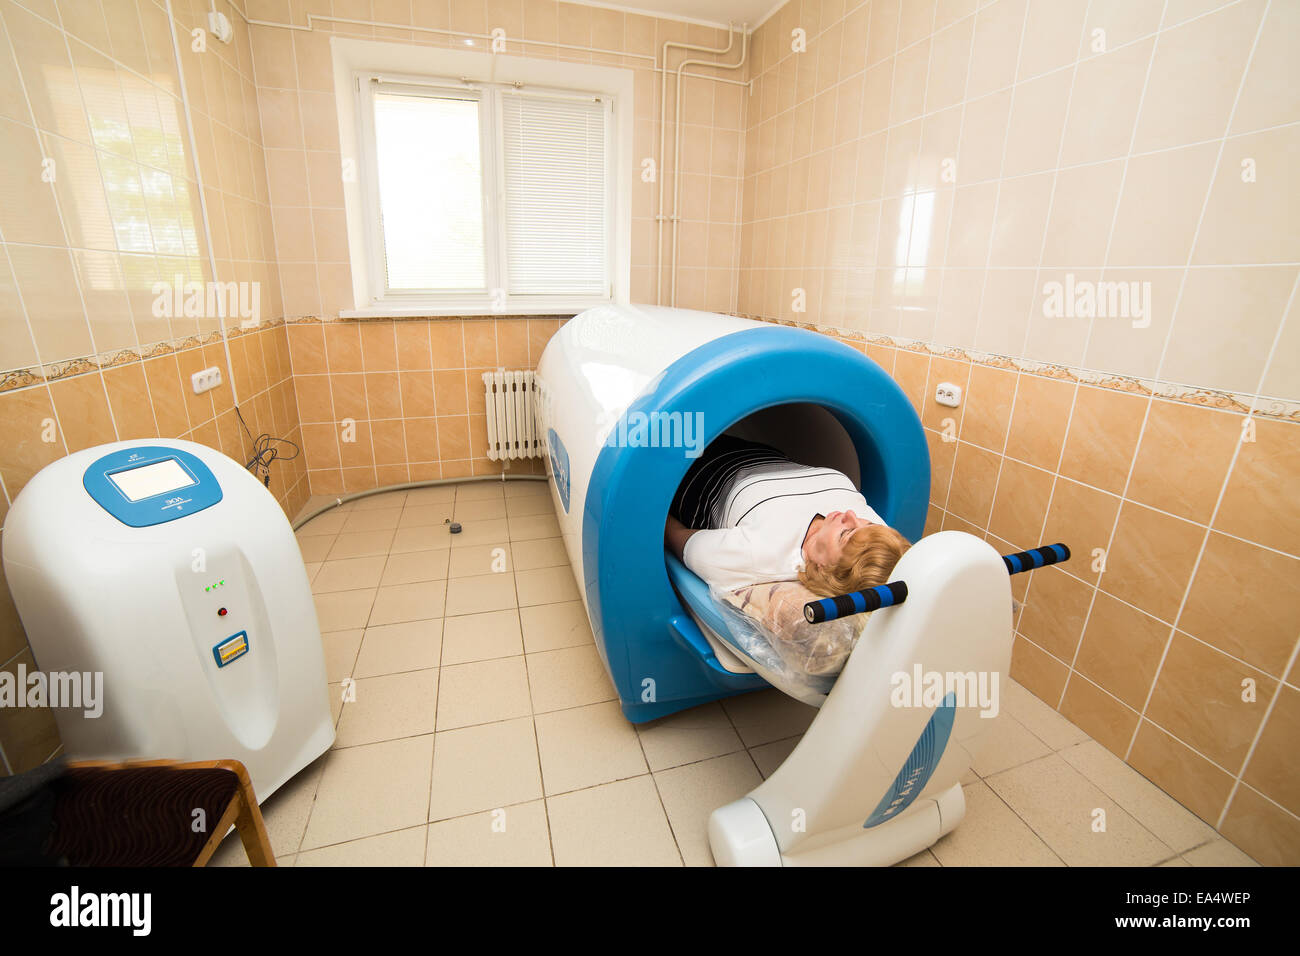 Magnetic therapy device in hospital - Stock Image